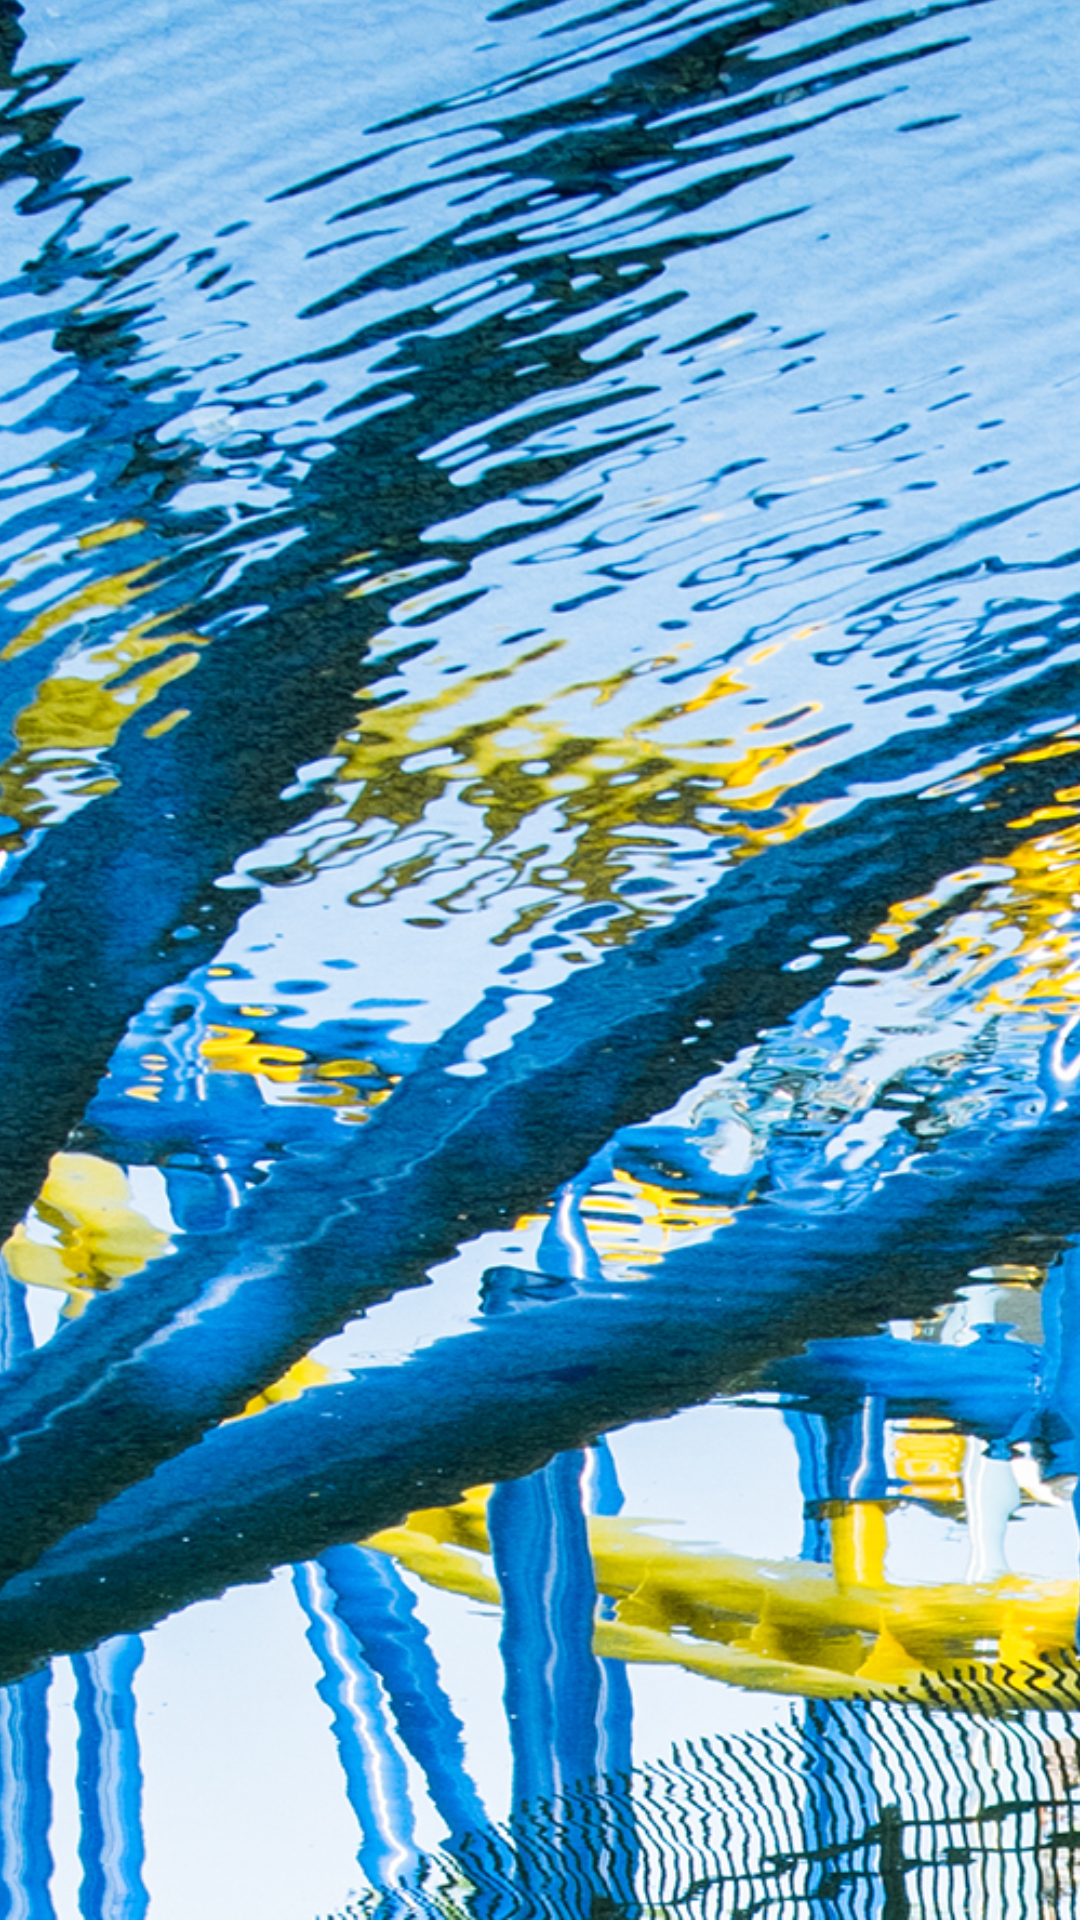 Reflection of a blue and yellow roller coaster in the ripples of a pond